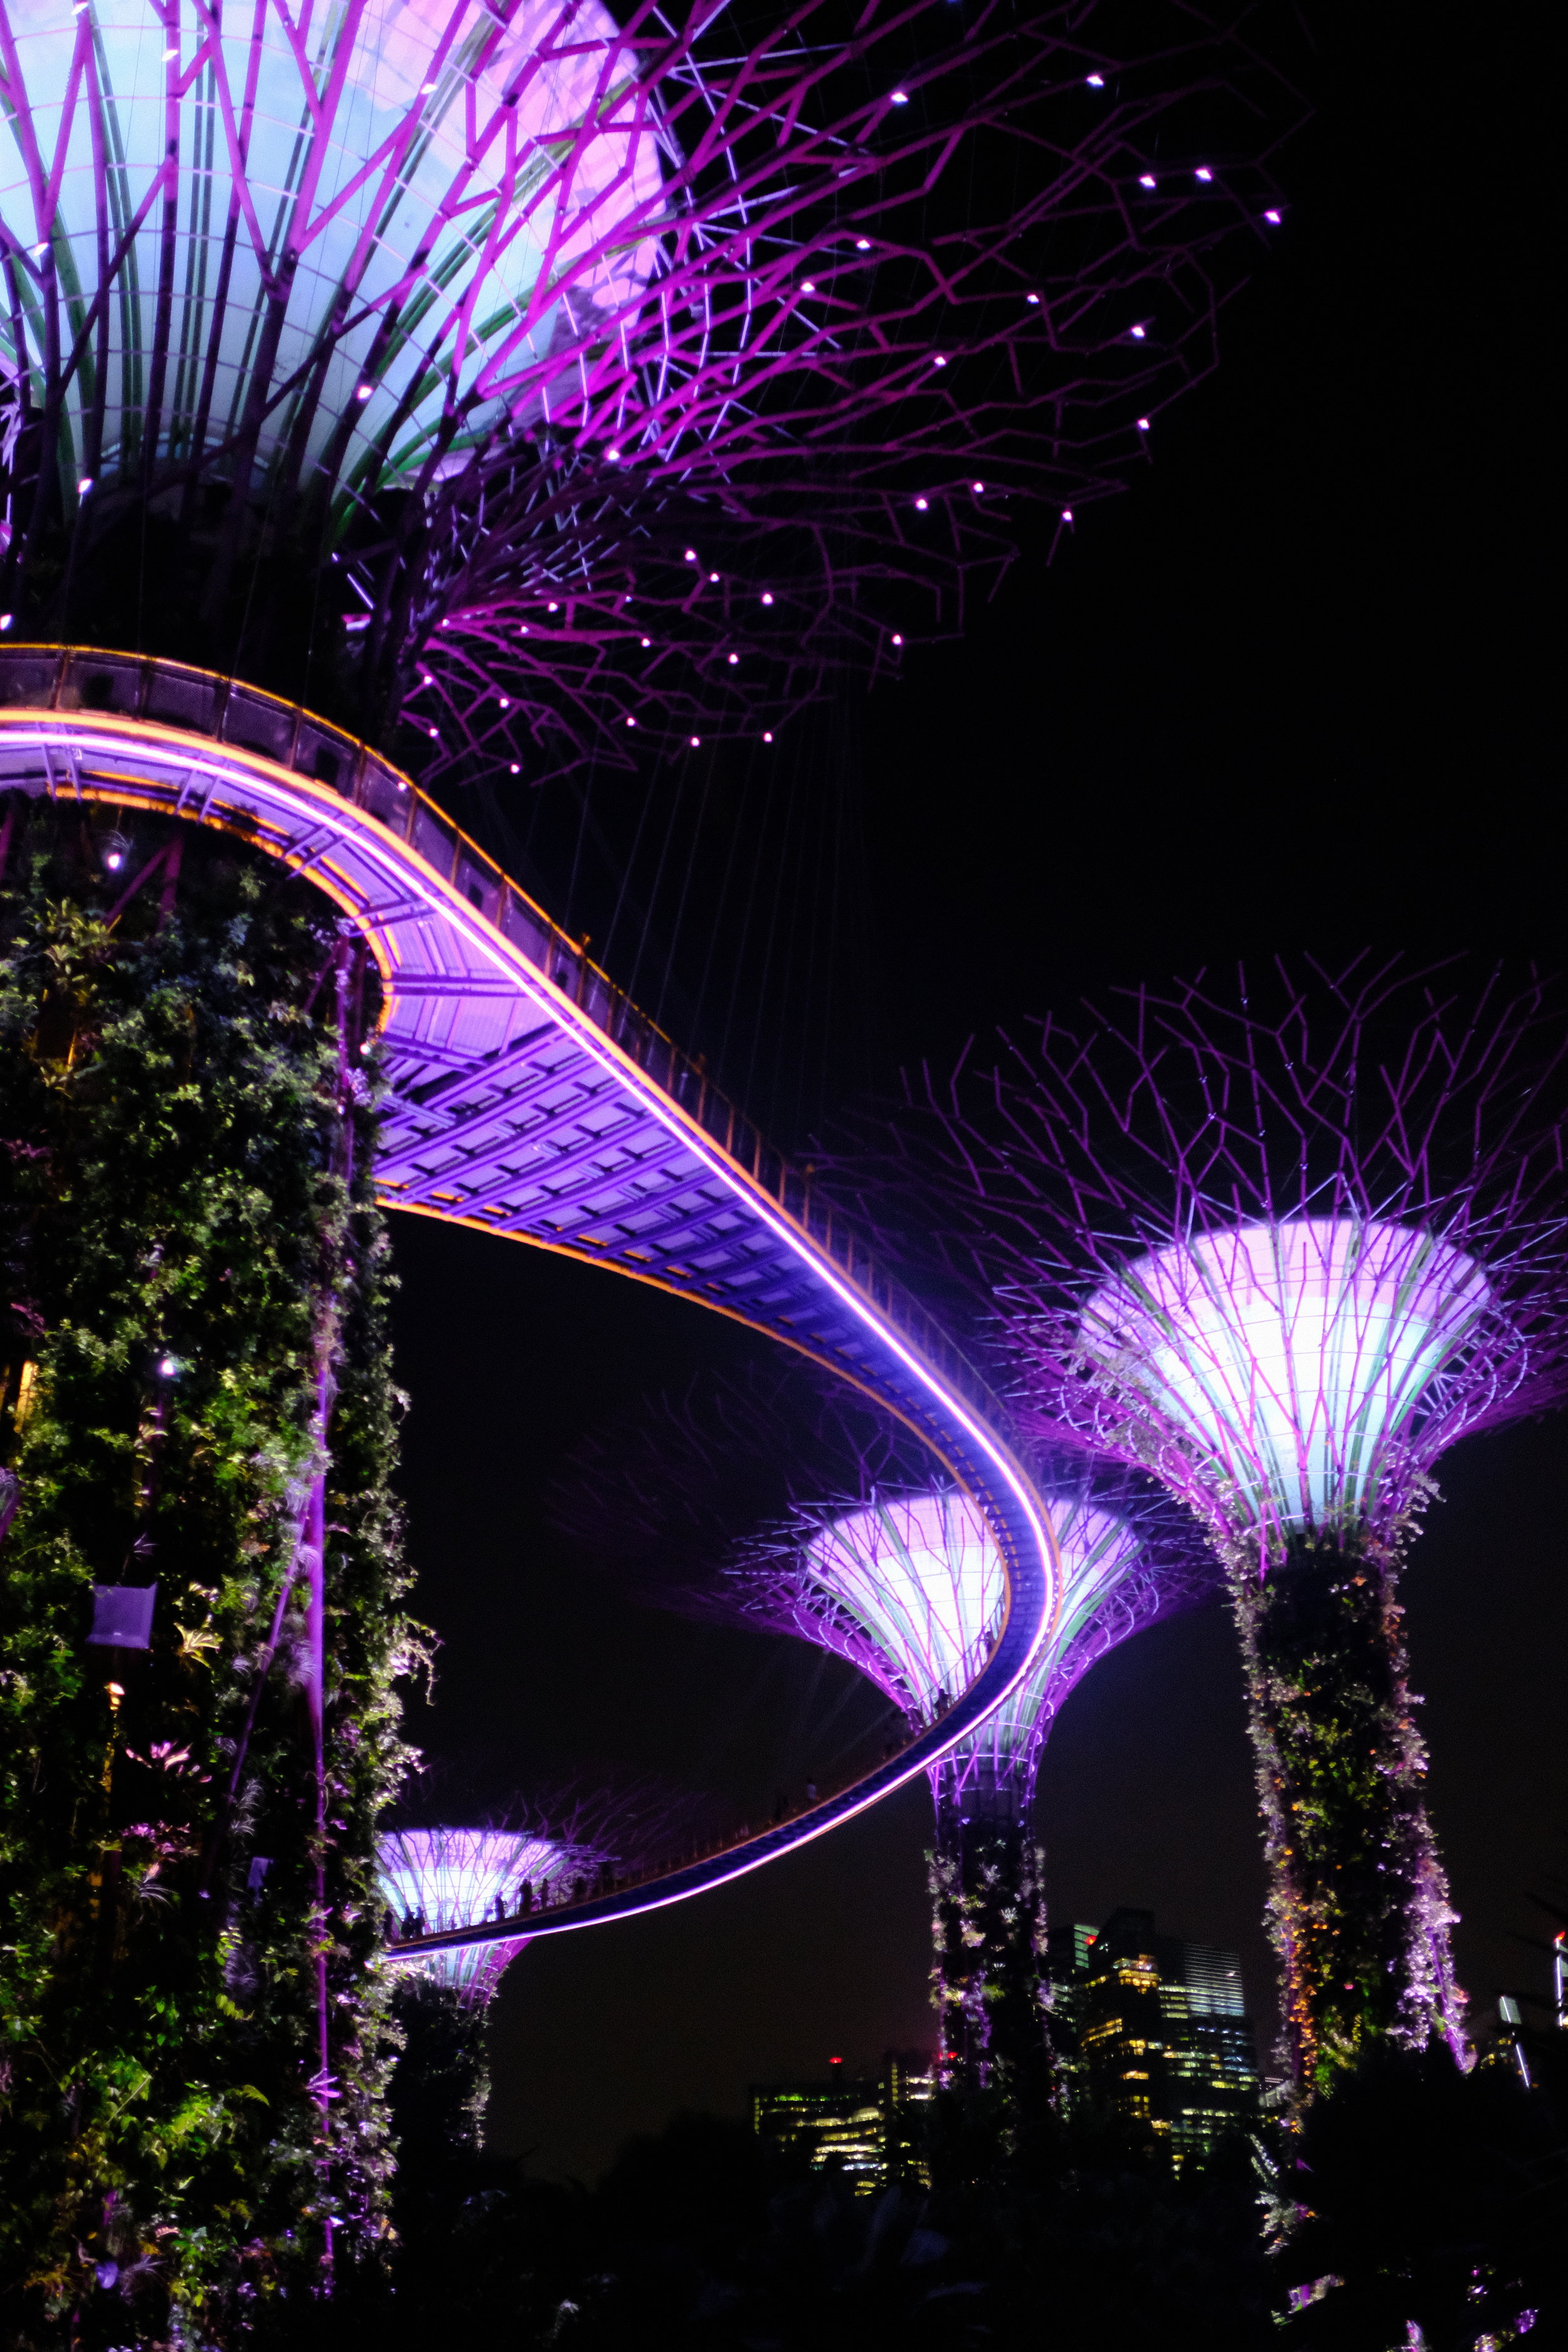 Garden by the Bay in Singapore with the 23mm f/2.0 wide open